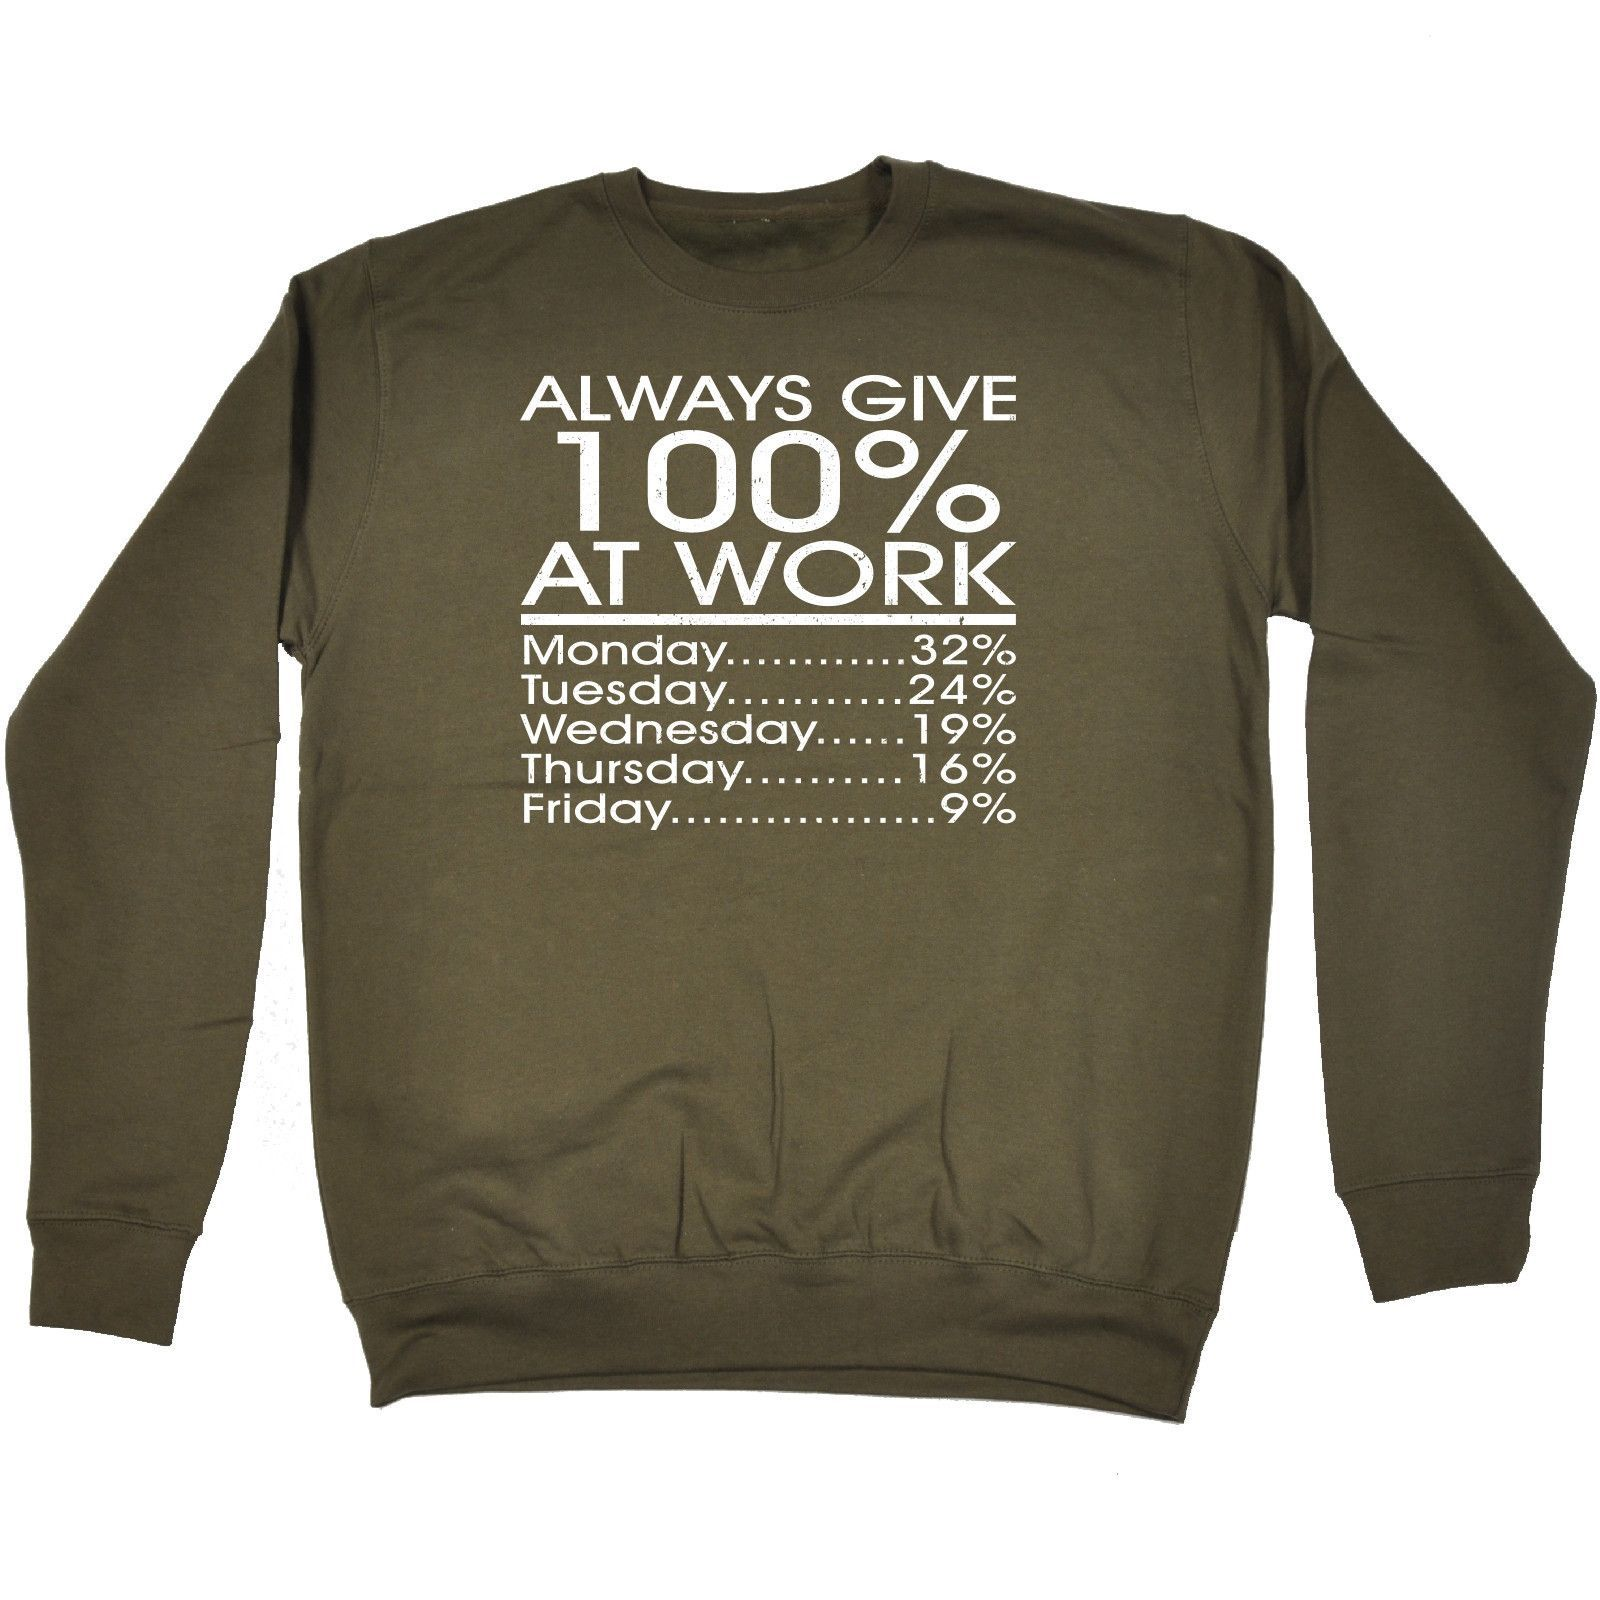 123t USA Always Give 100% At Work Monday 32% Friday 9% Funny Sweatshirt